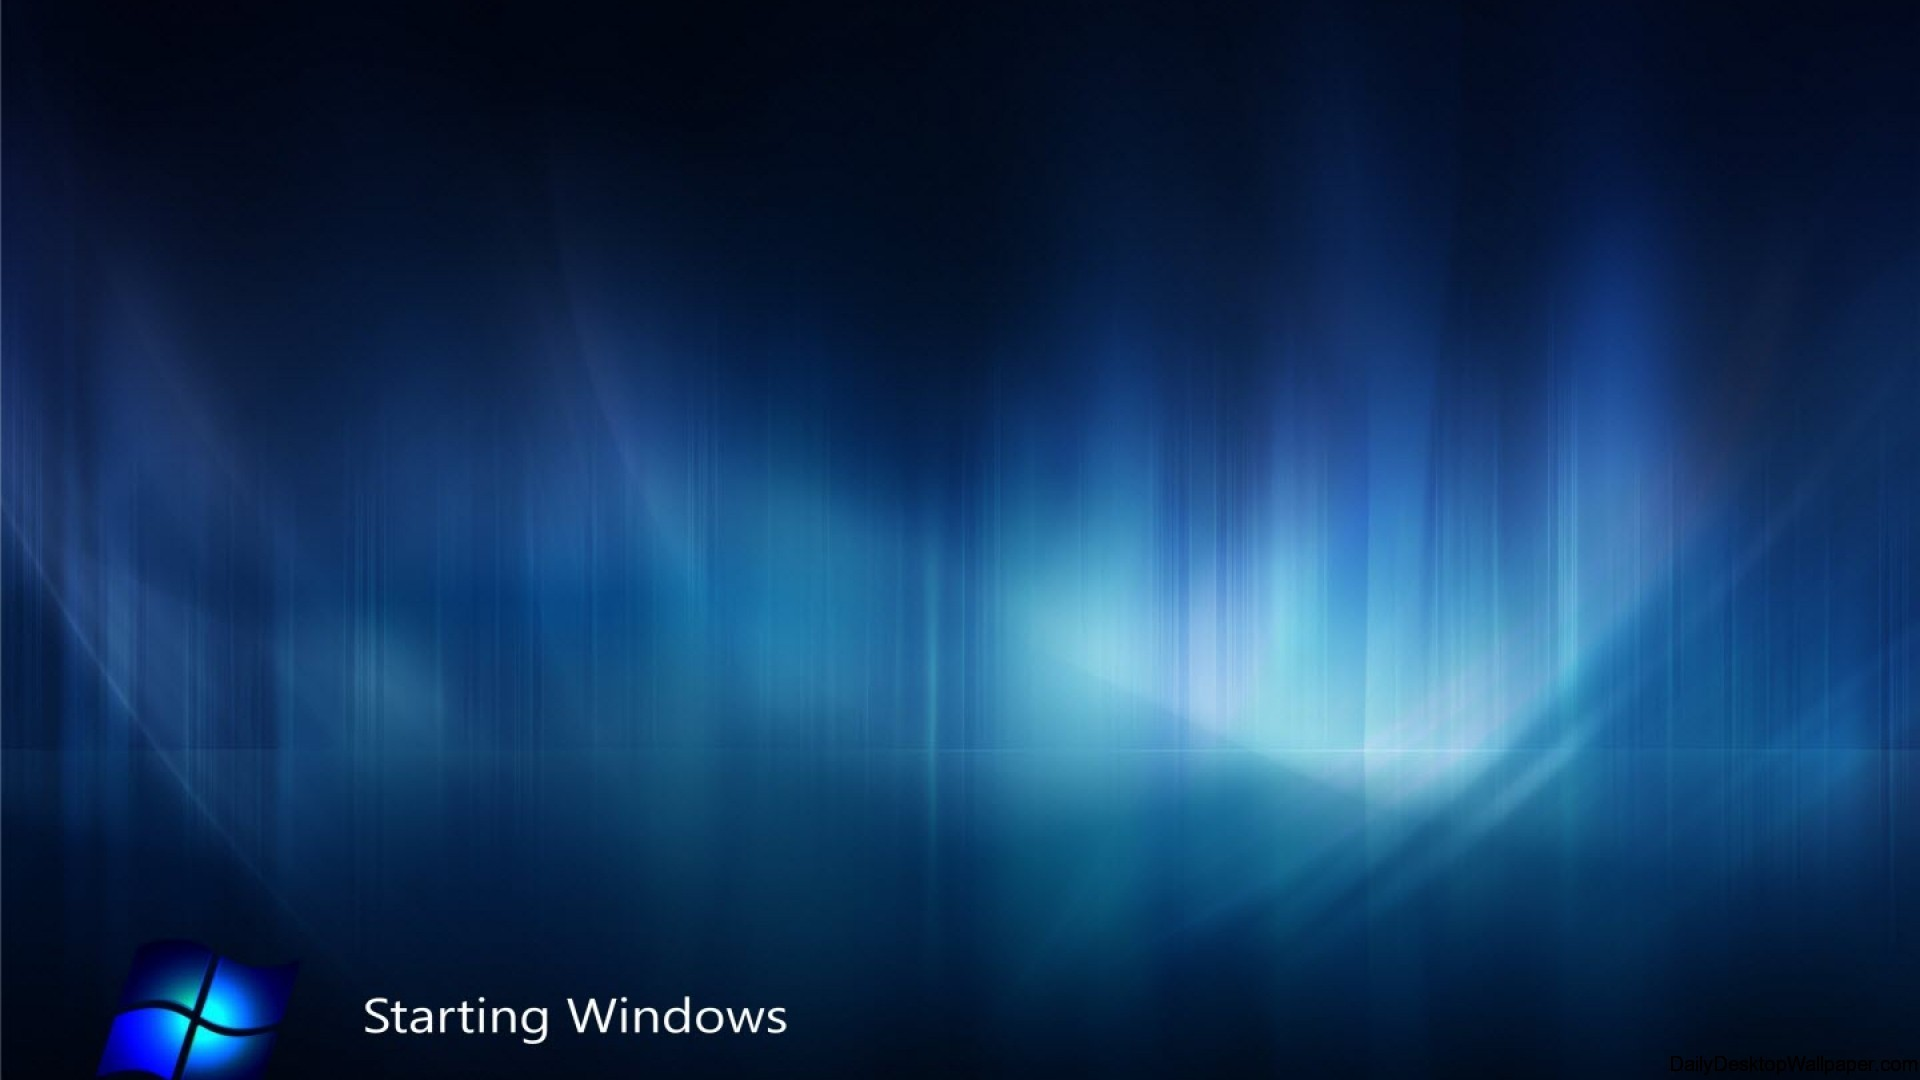 windows 8 black wallpaper - wallpapersafari